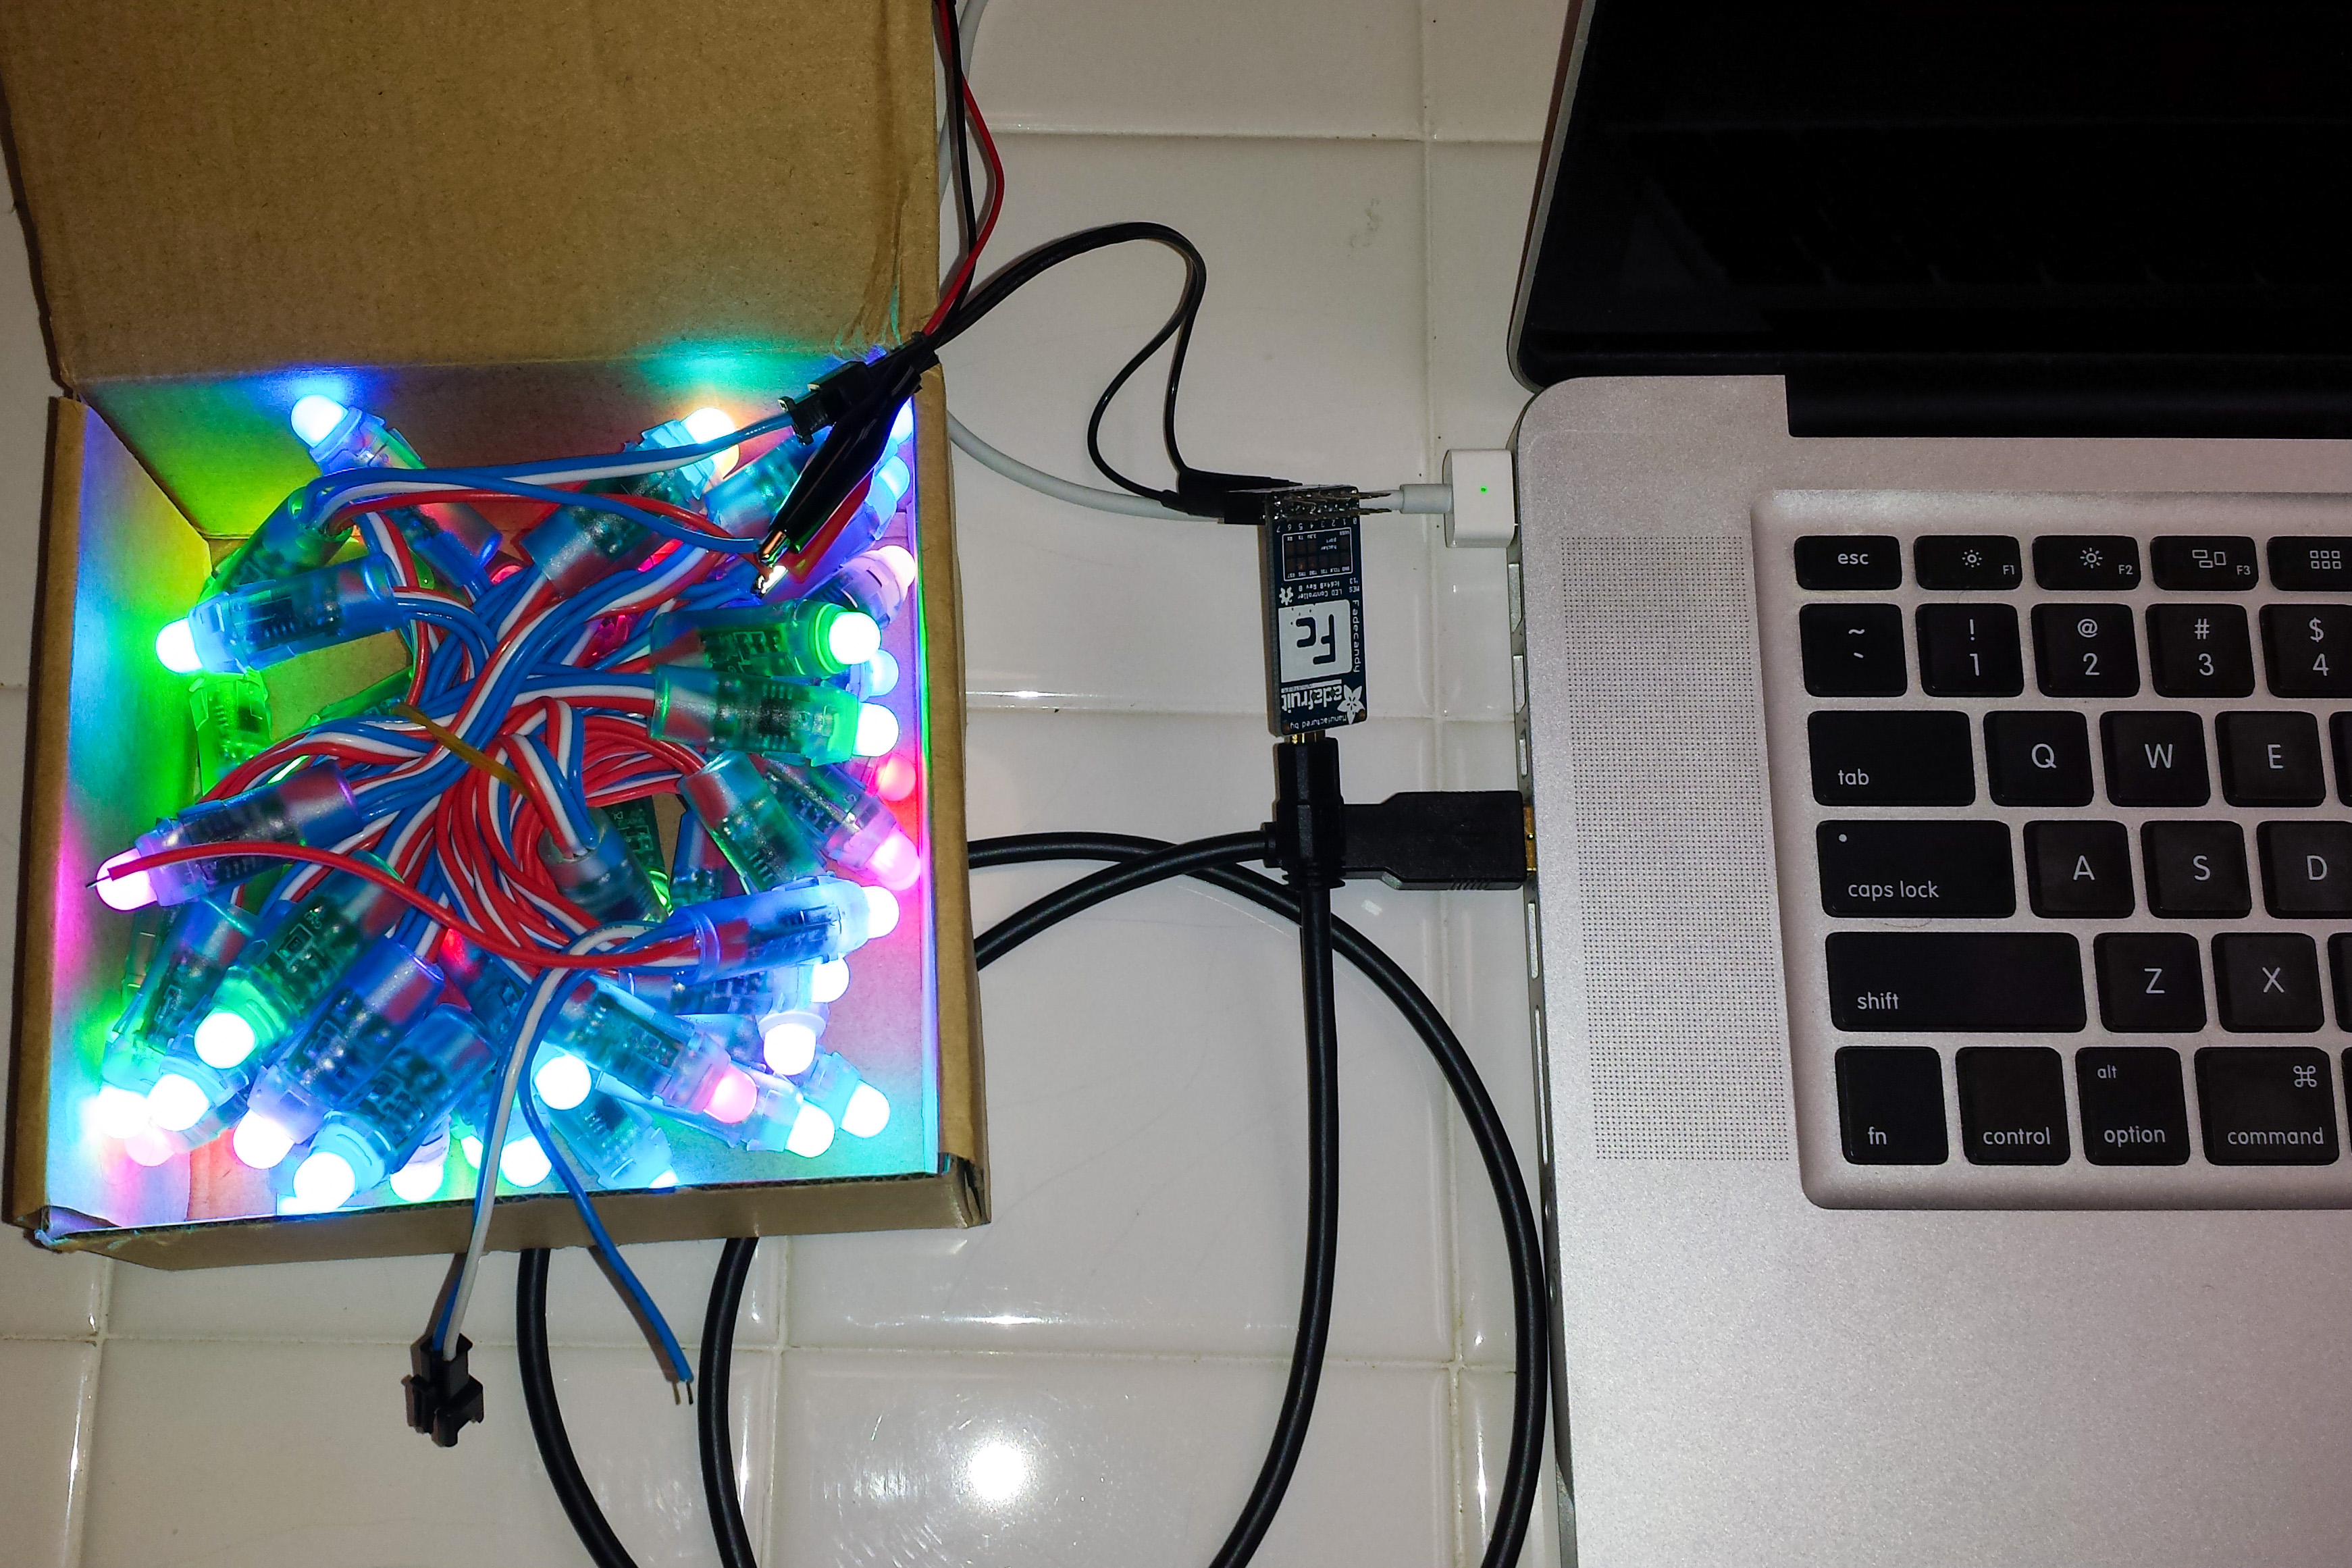 alitove lights connected to laptop via fadecandy